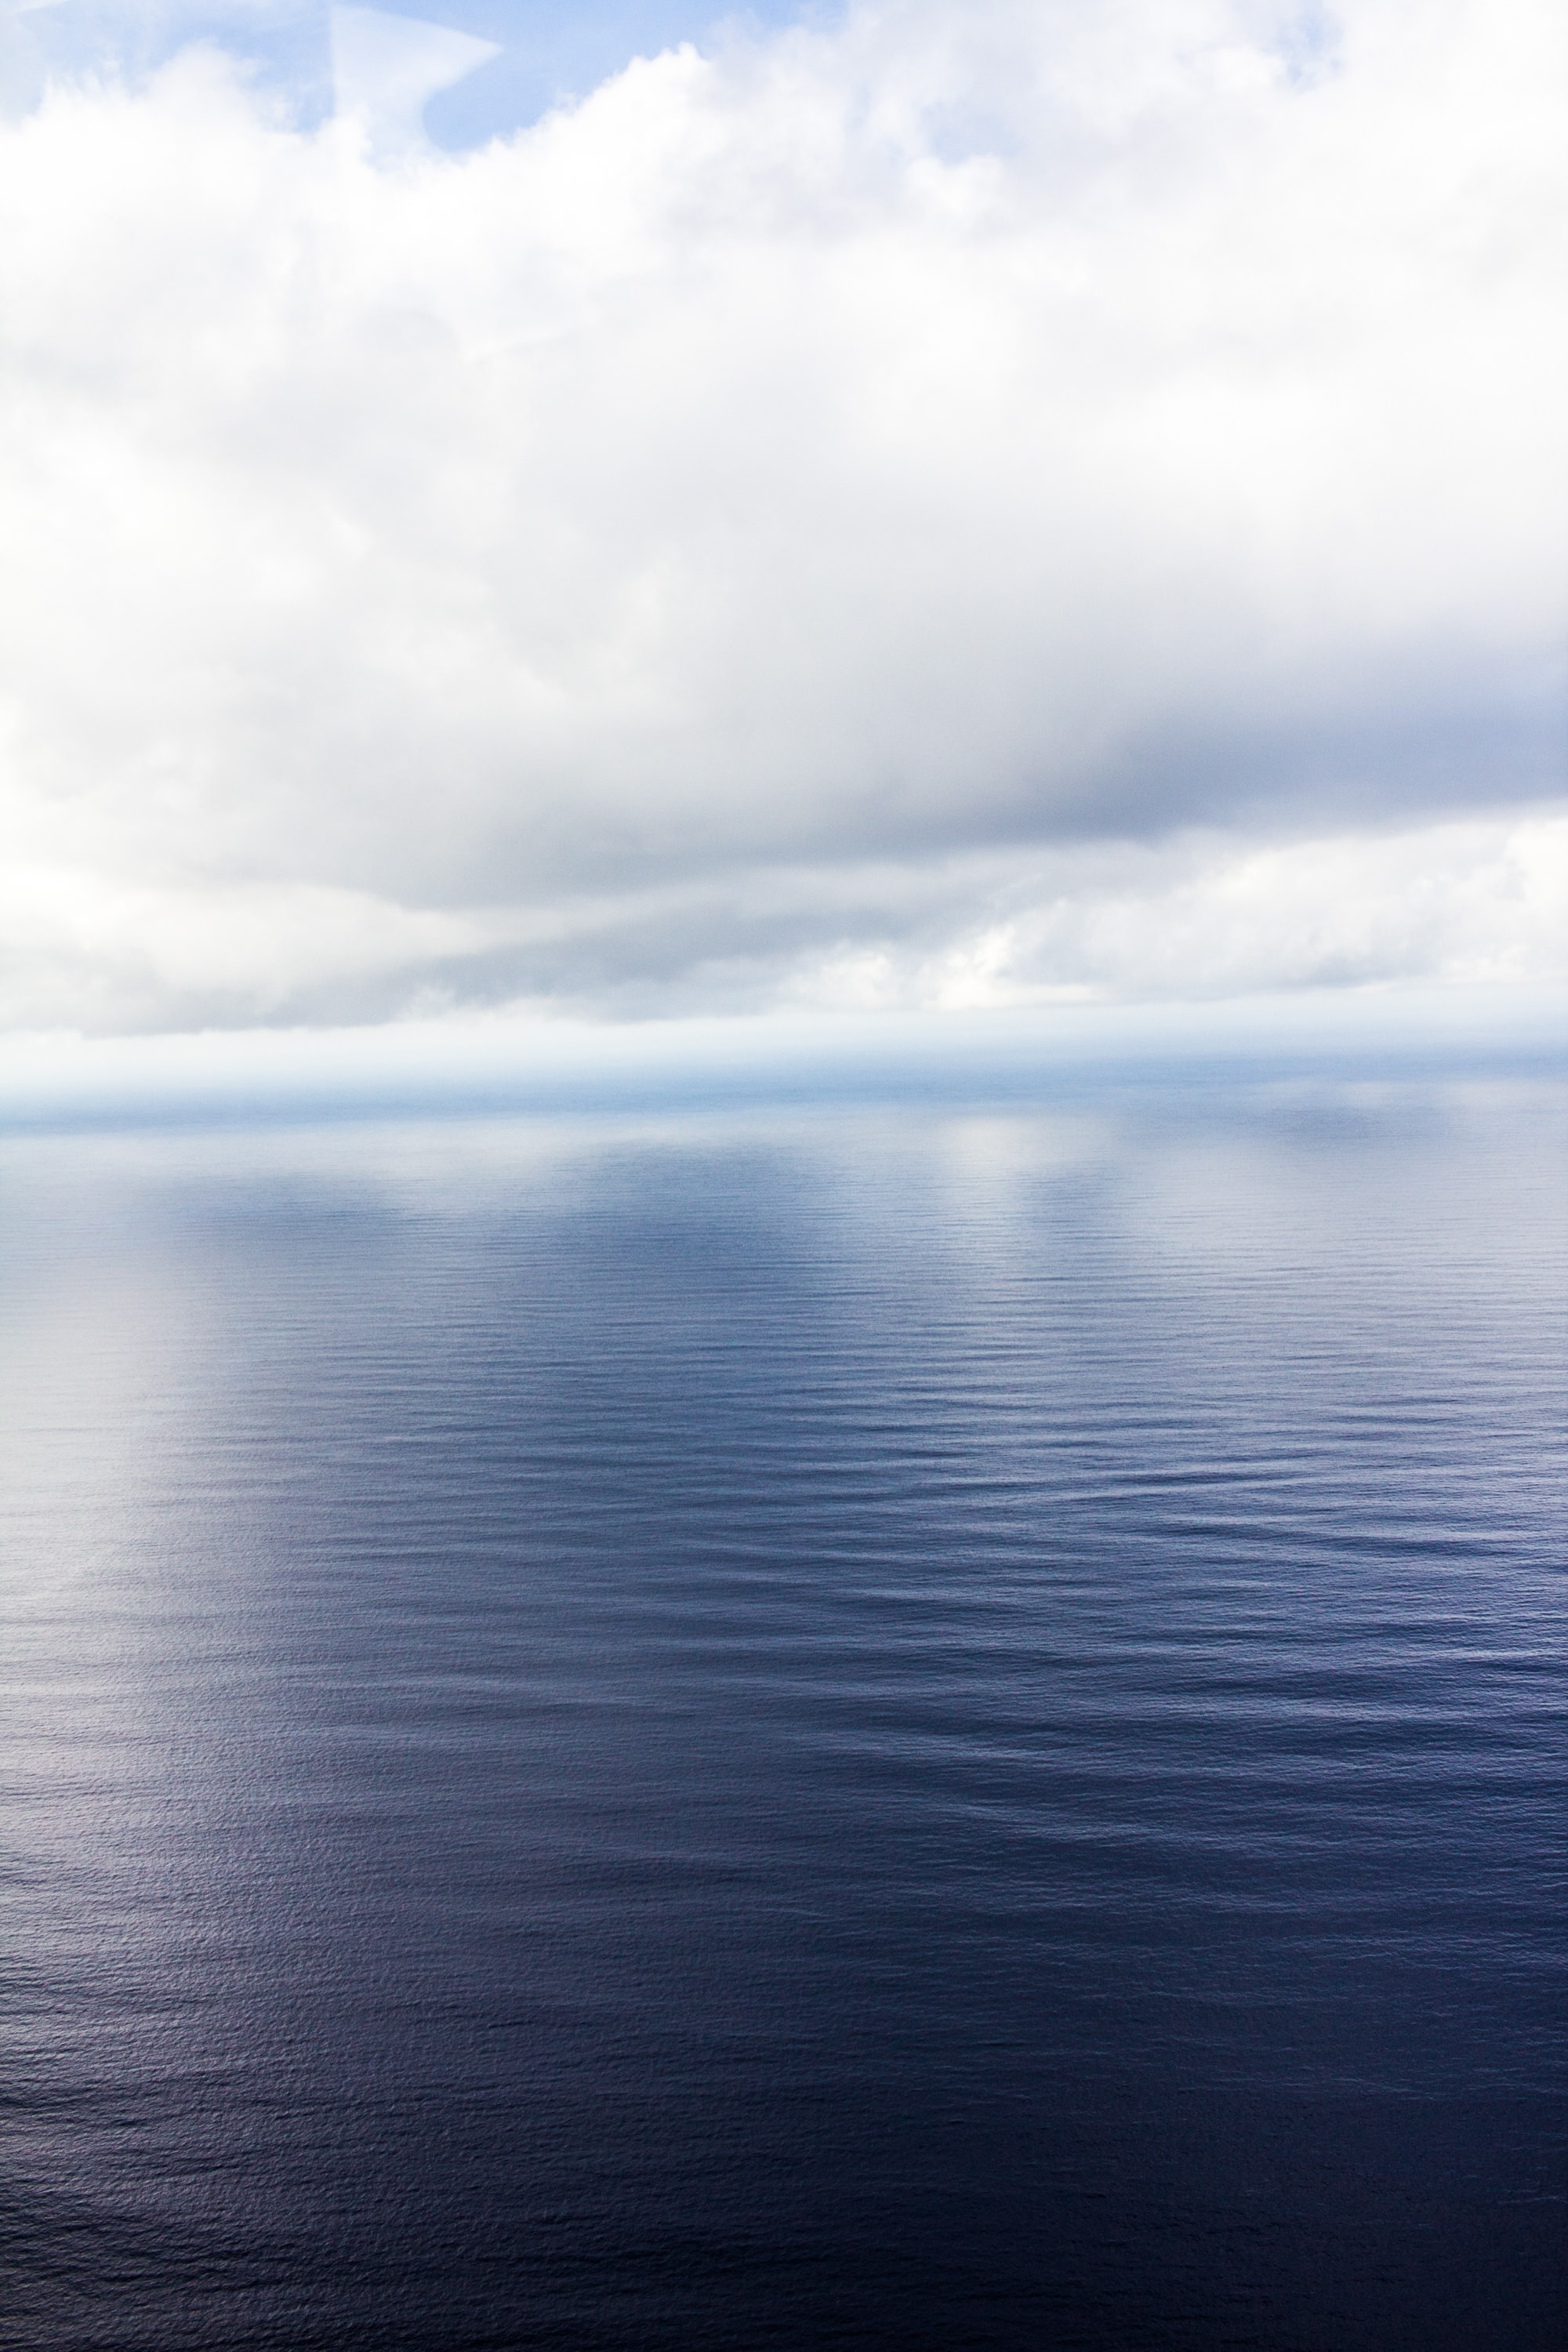 photo of calm body of water